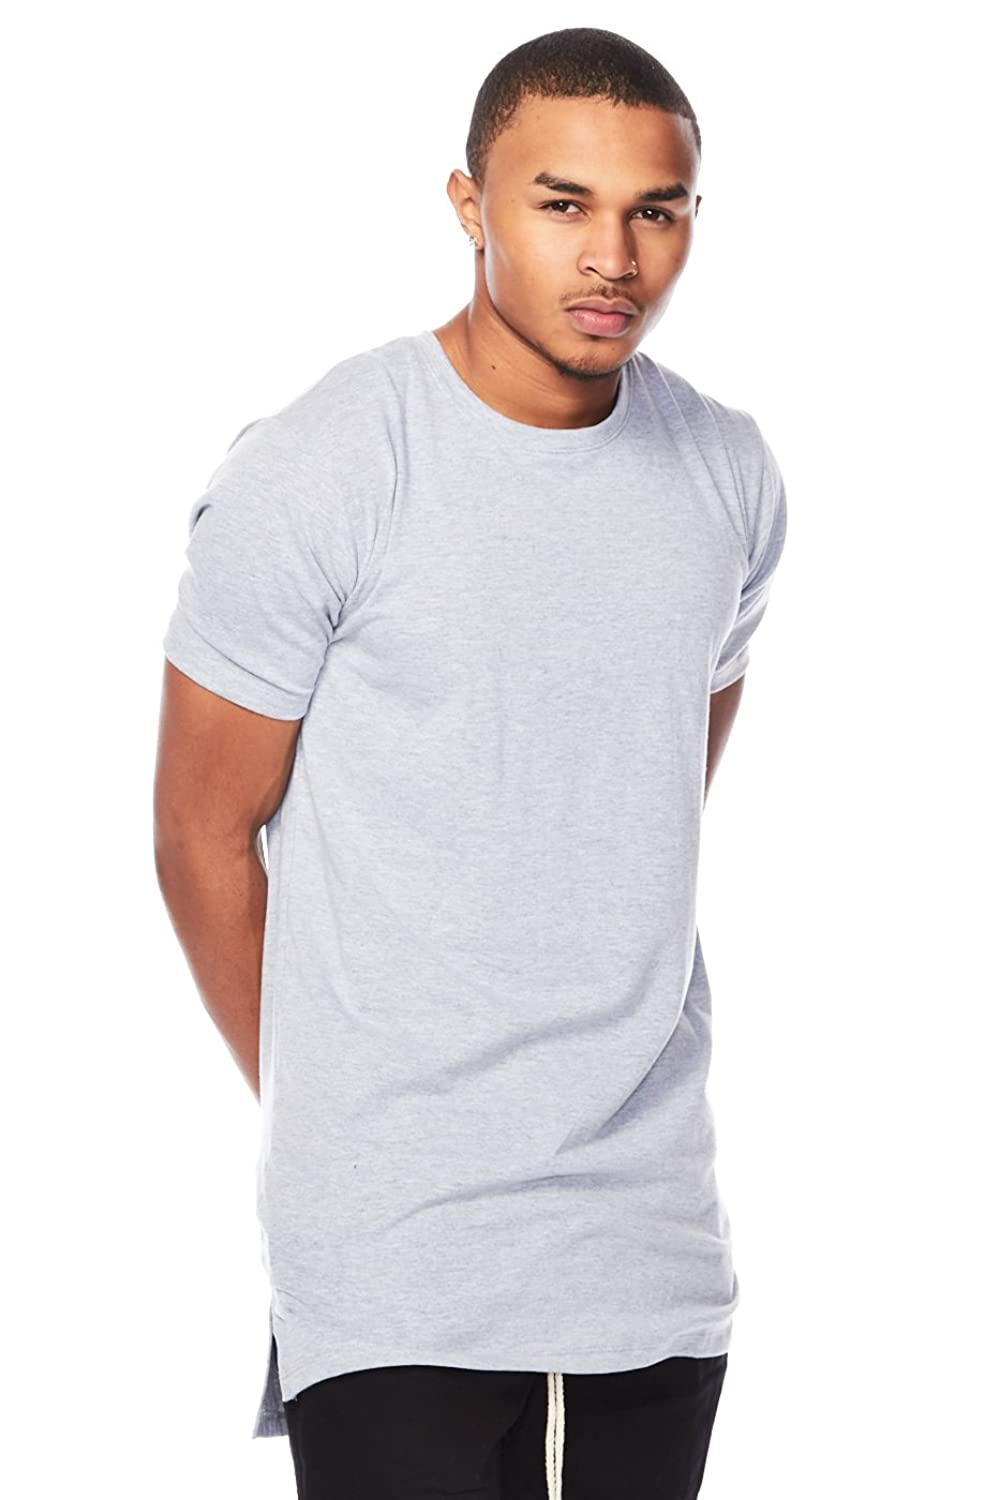 Mens Slim Fit Basic Solid Short Sleeves Round Neck Tee Top Shirt 1509